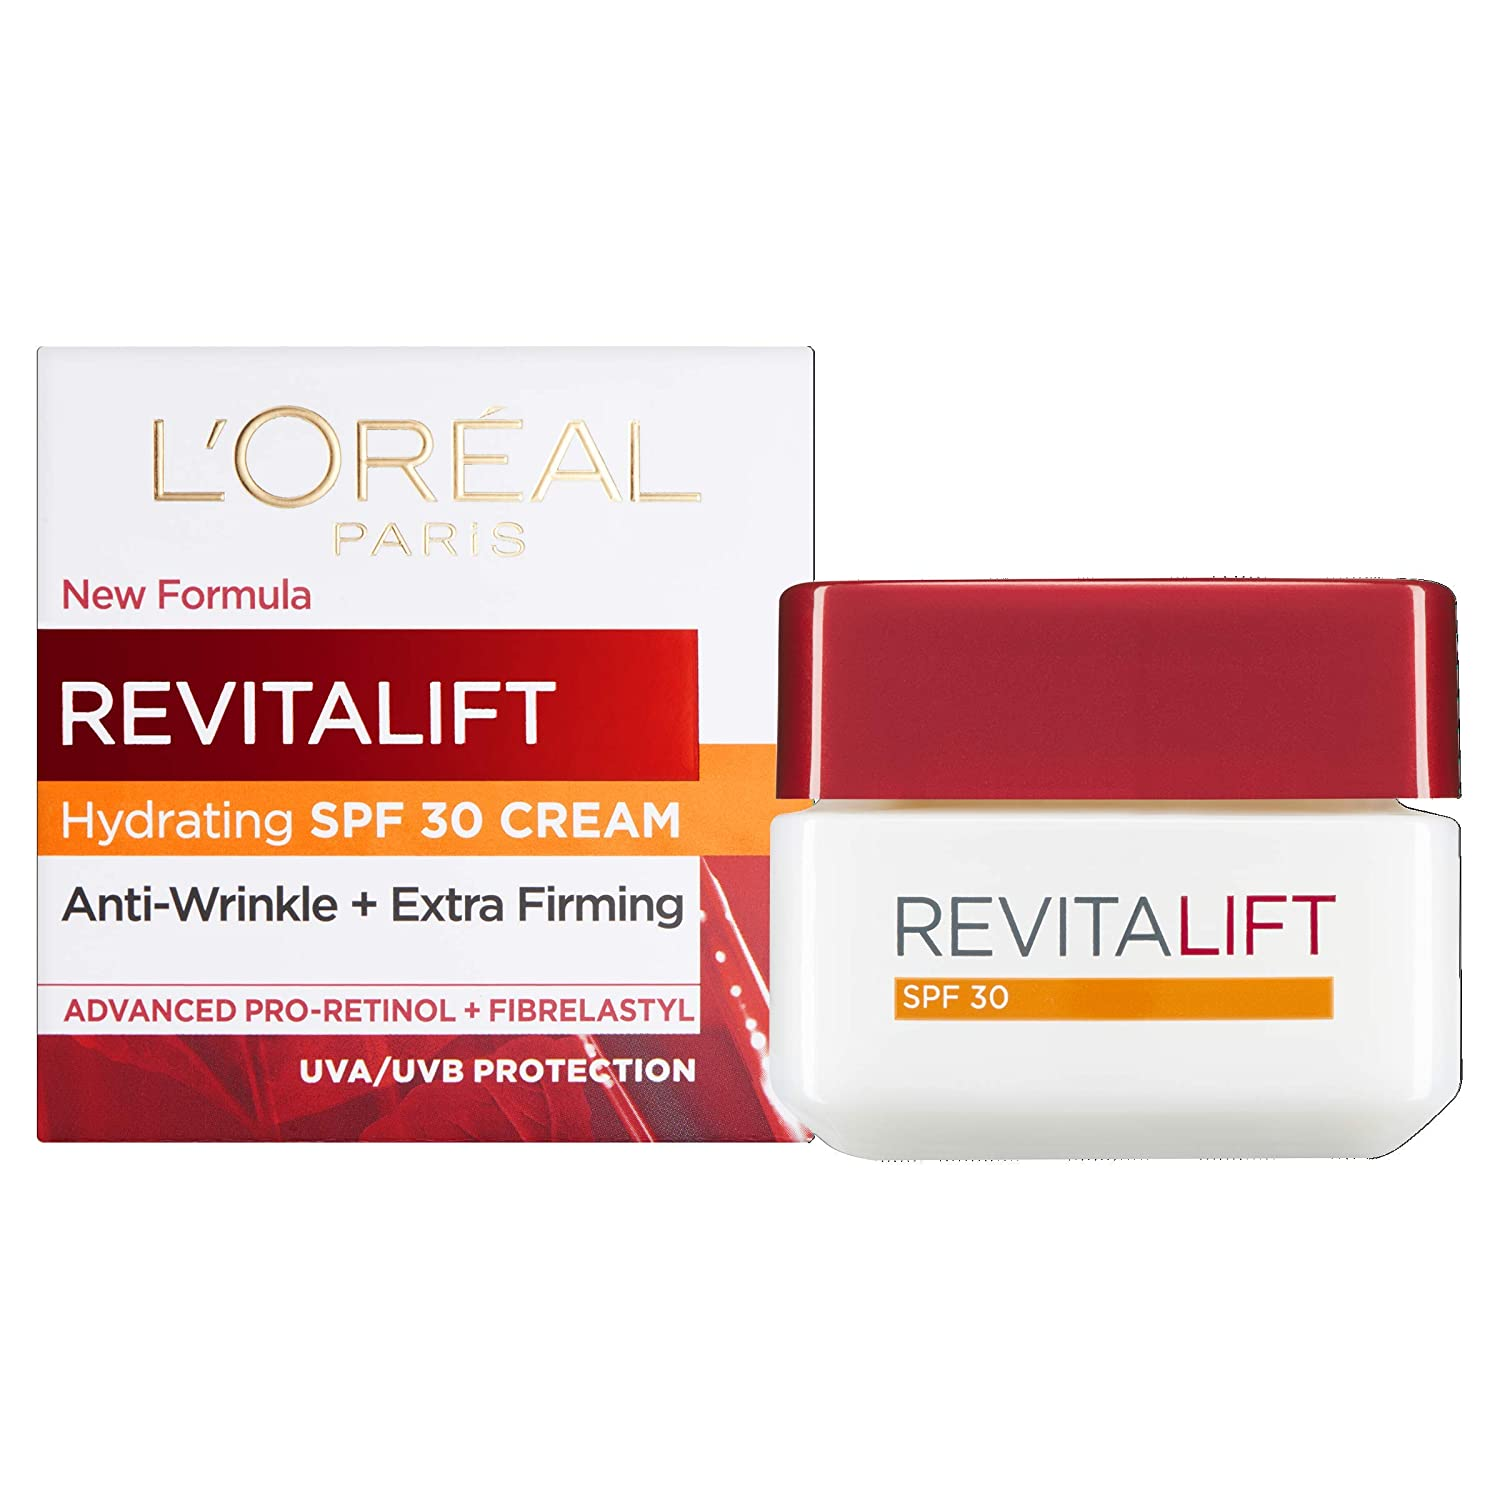 WHOLESALE LOREAL REVITALIFT SPF 30 HYDRATING DAY CREAM ANTI-WRINKLE + EXTRA FIRMING 1.7 OZ - 48 PIECE LOT